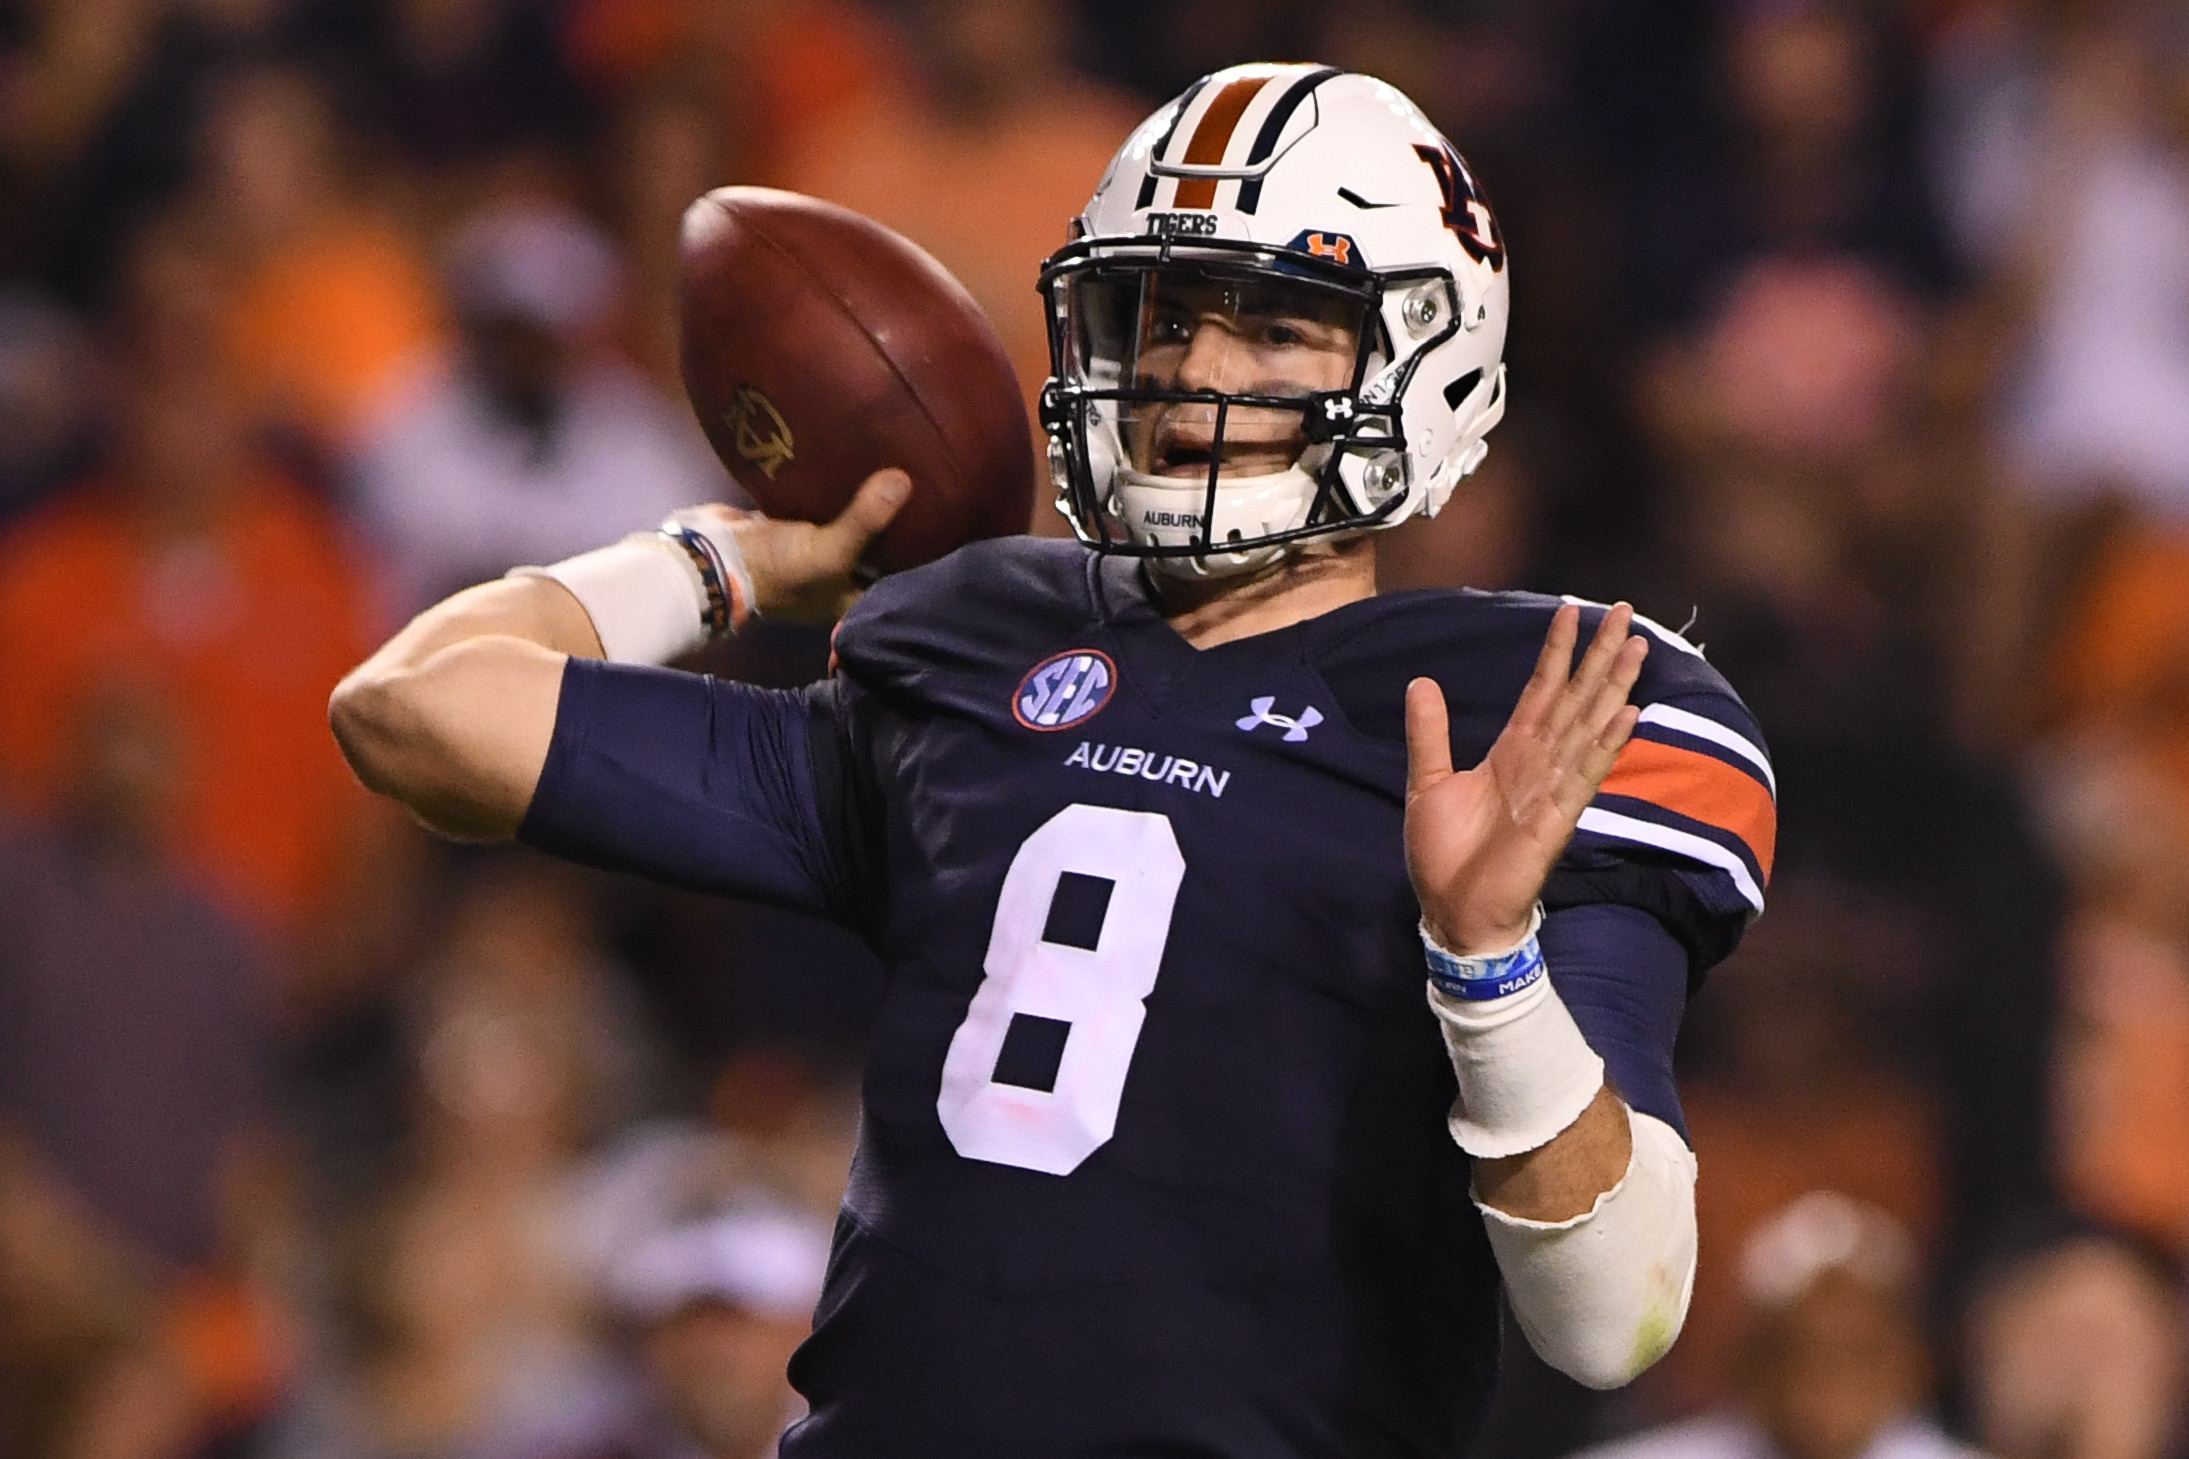 227d920a821 Quarterback Jarrett Stidham has a pass efficiency rating of 216.16 in  Auburn's three SEC games this